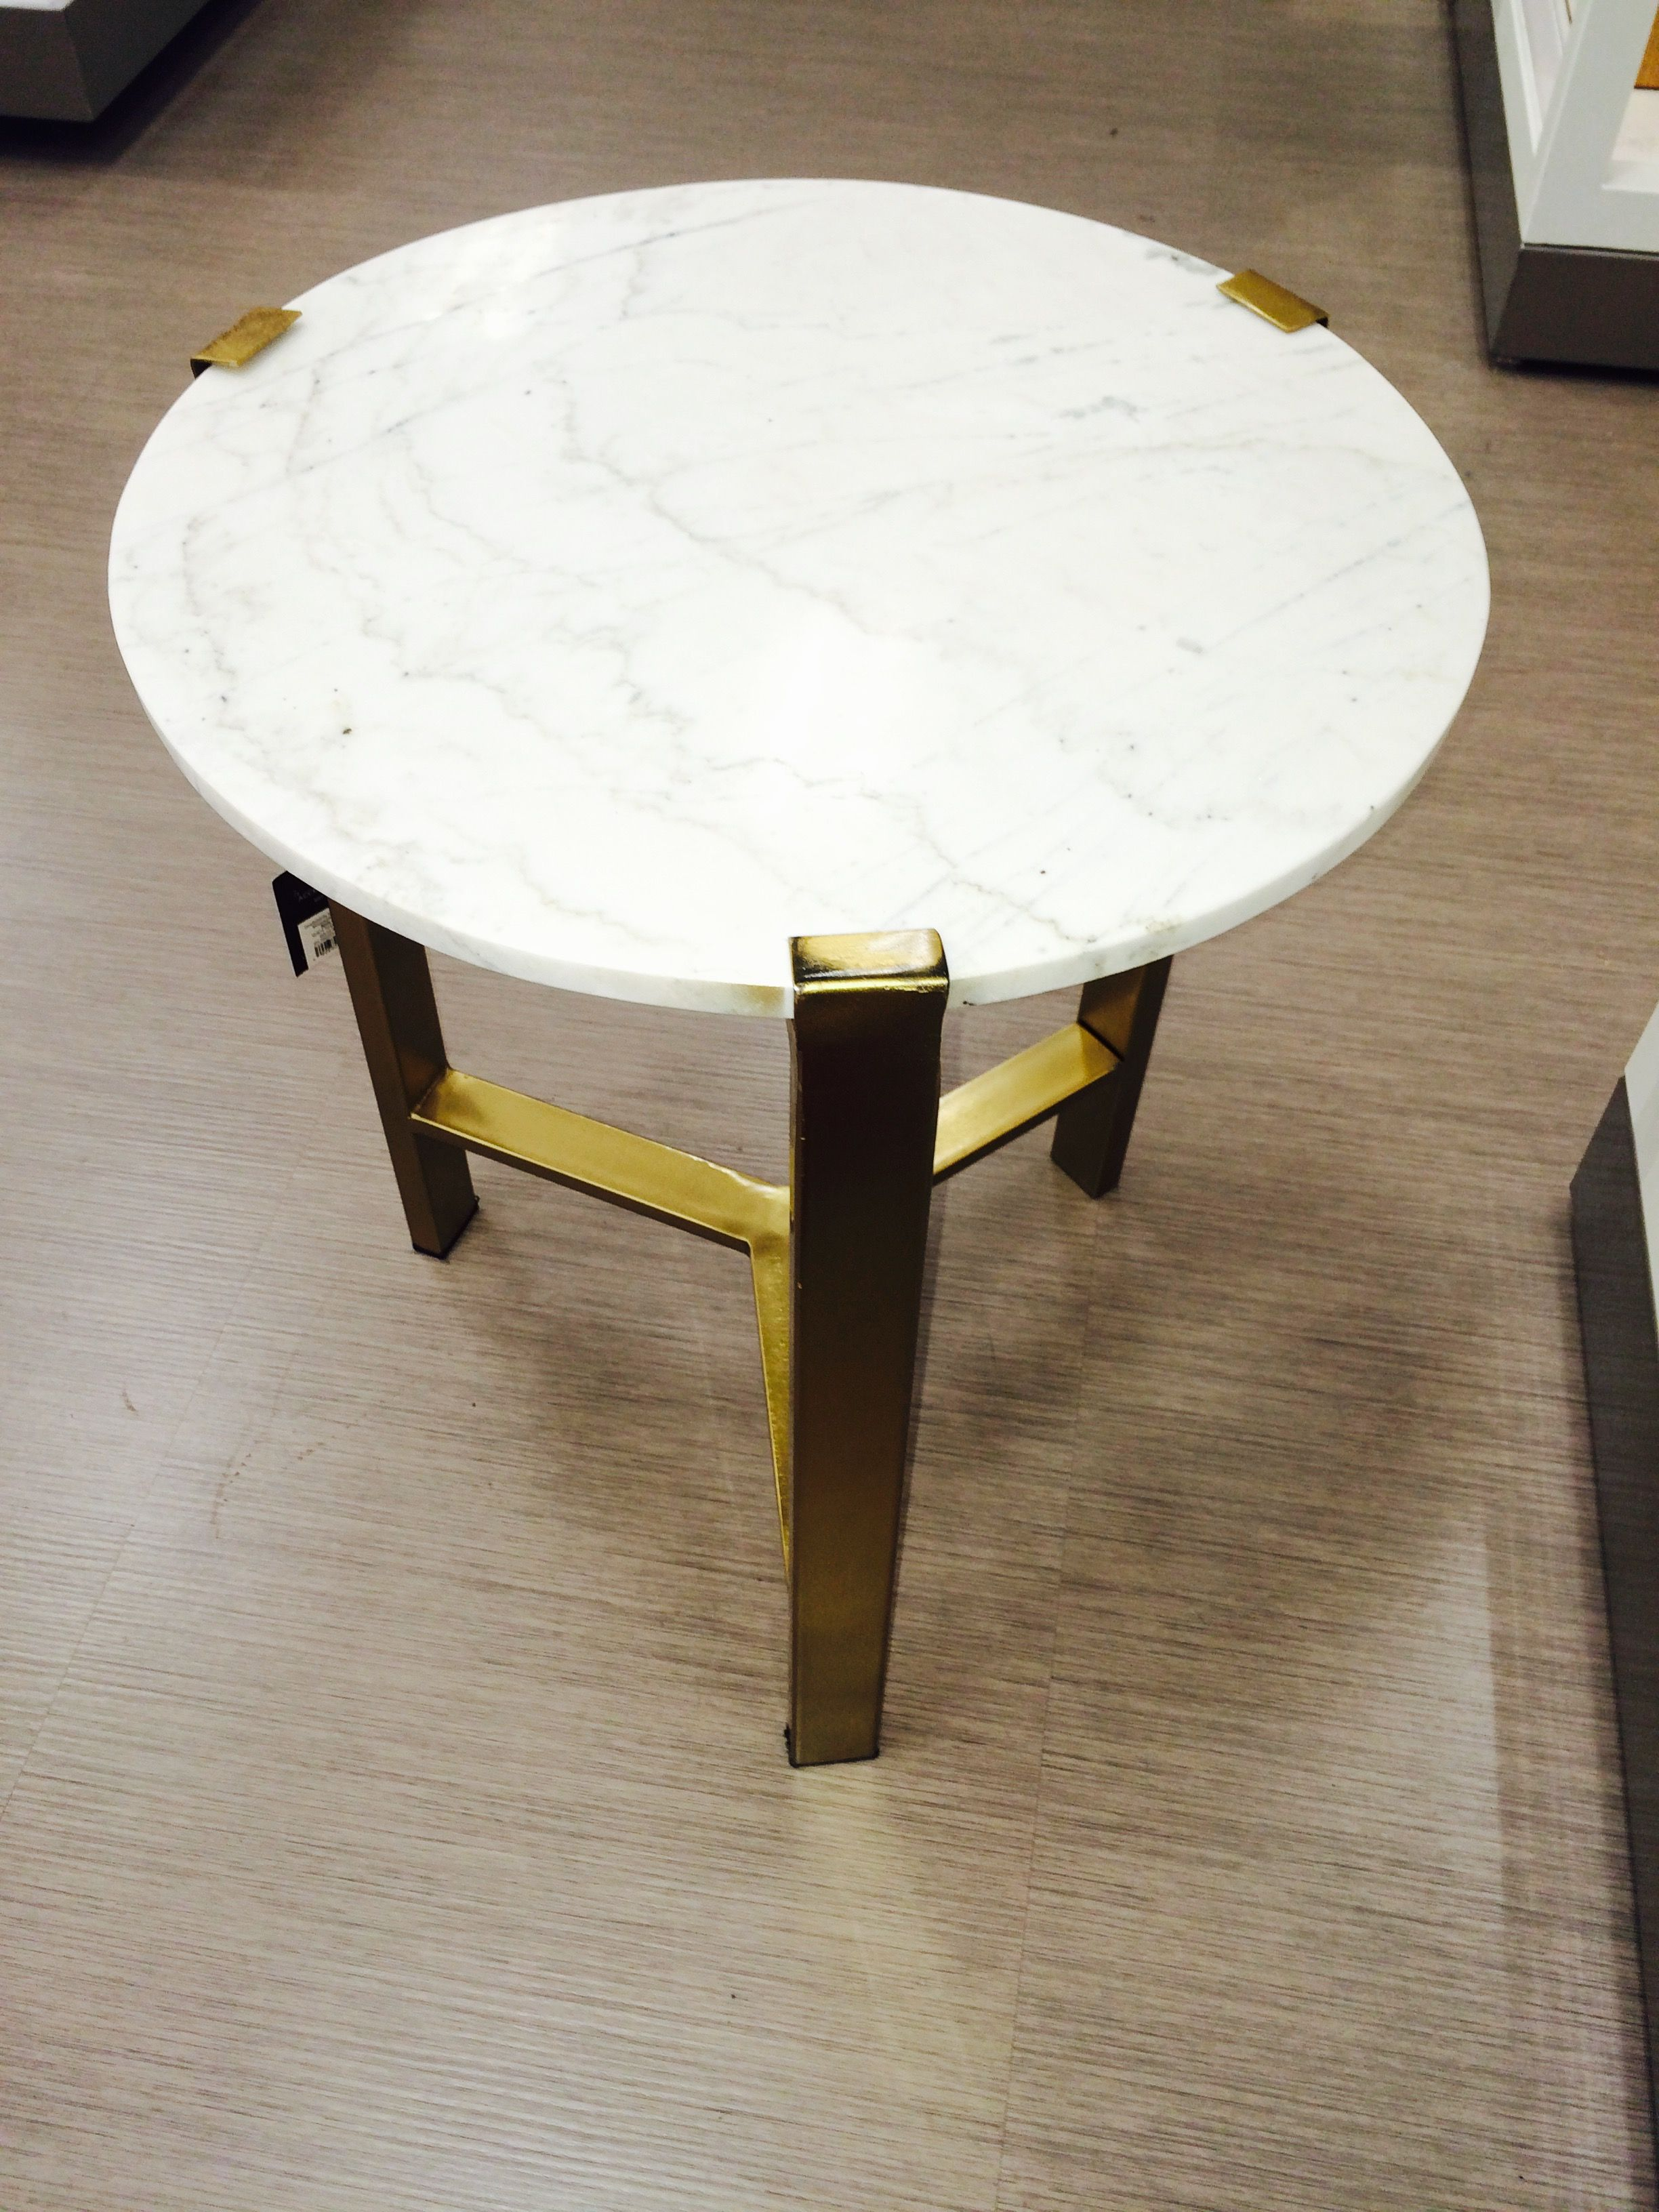 nate berkus for target gold accent table with marble top the halogen floor lamp oak glass coffee concrete dinner chrome tables round metal end short living room beach bathroom